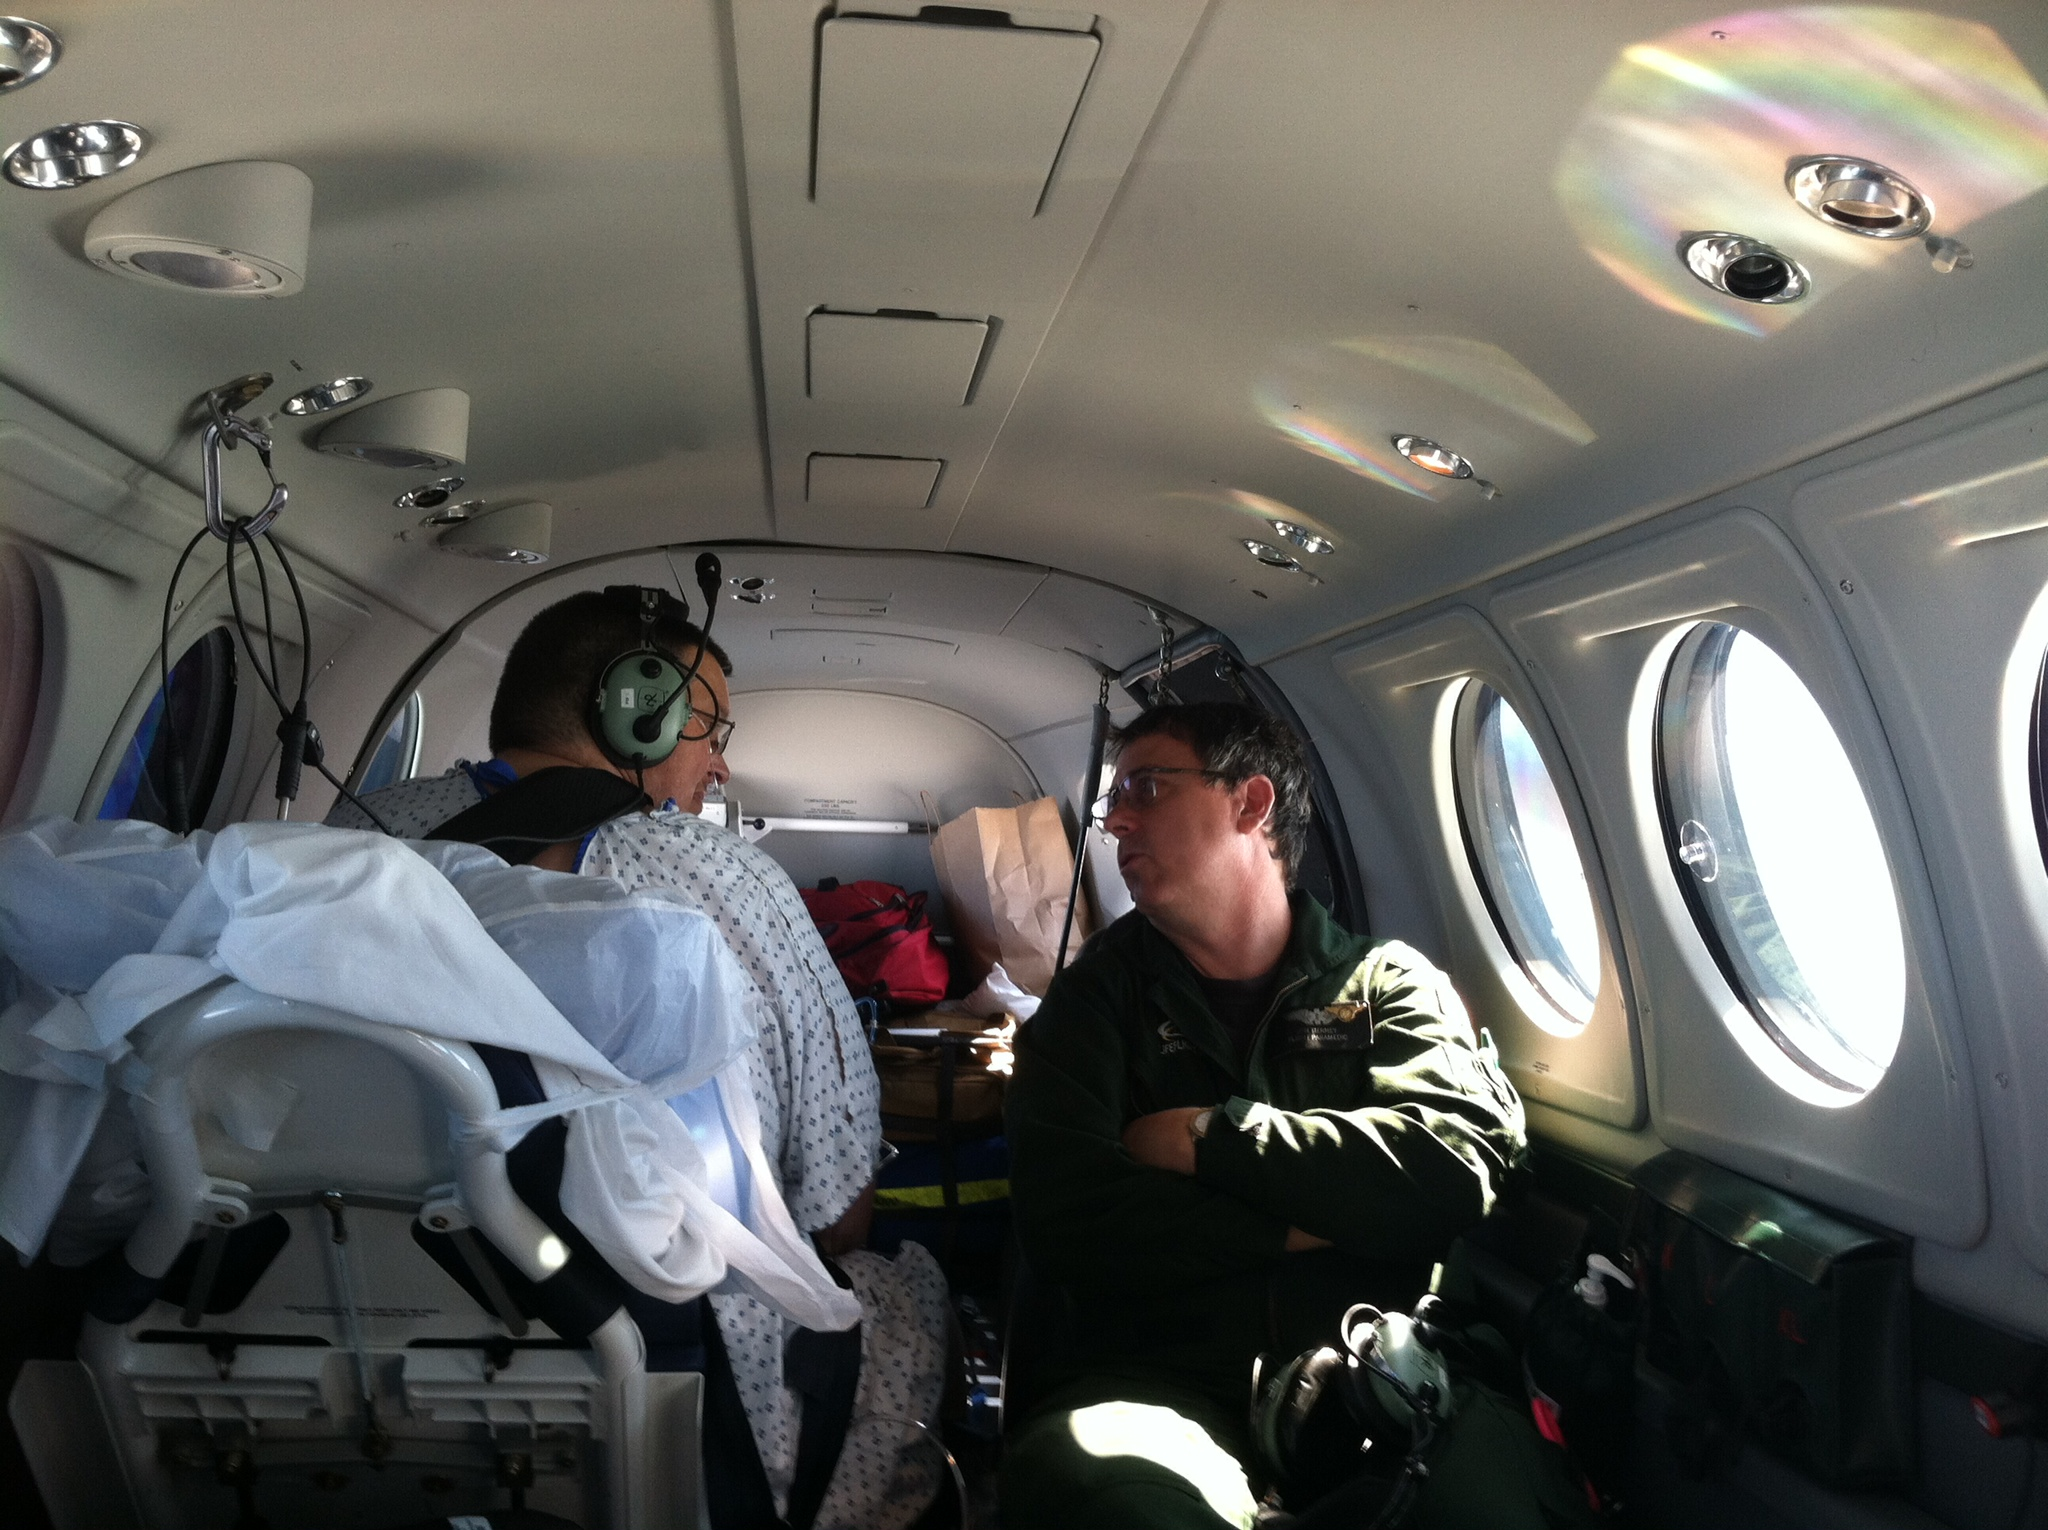 Cliff's LifeFlight trip from Maine to to Pennsylvania